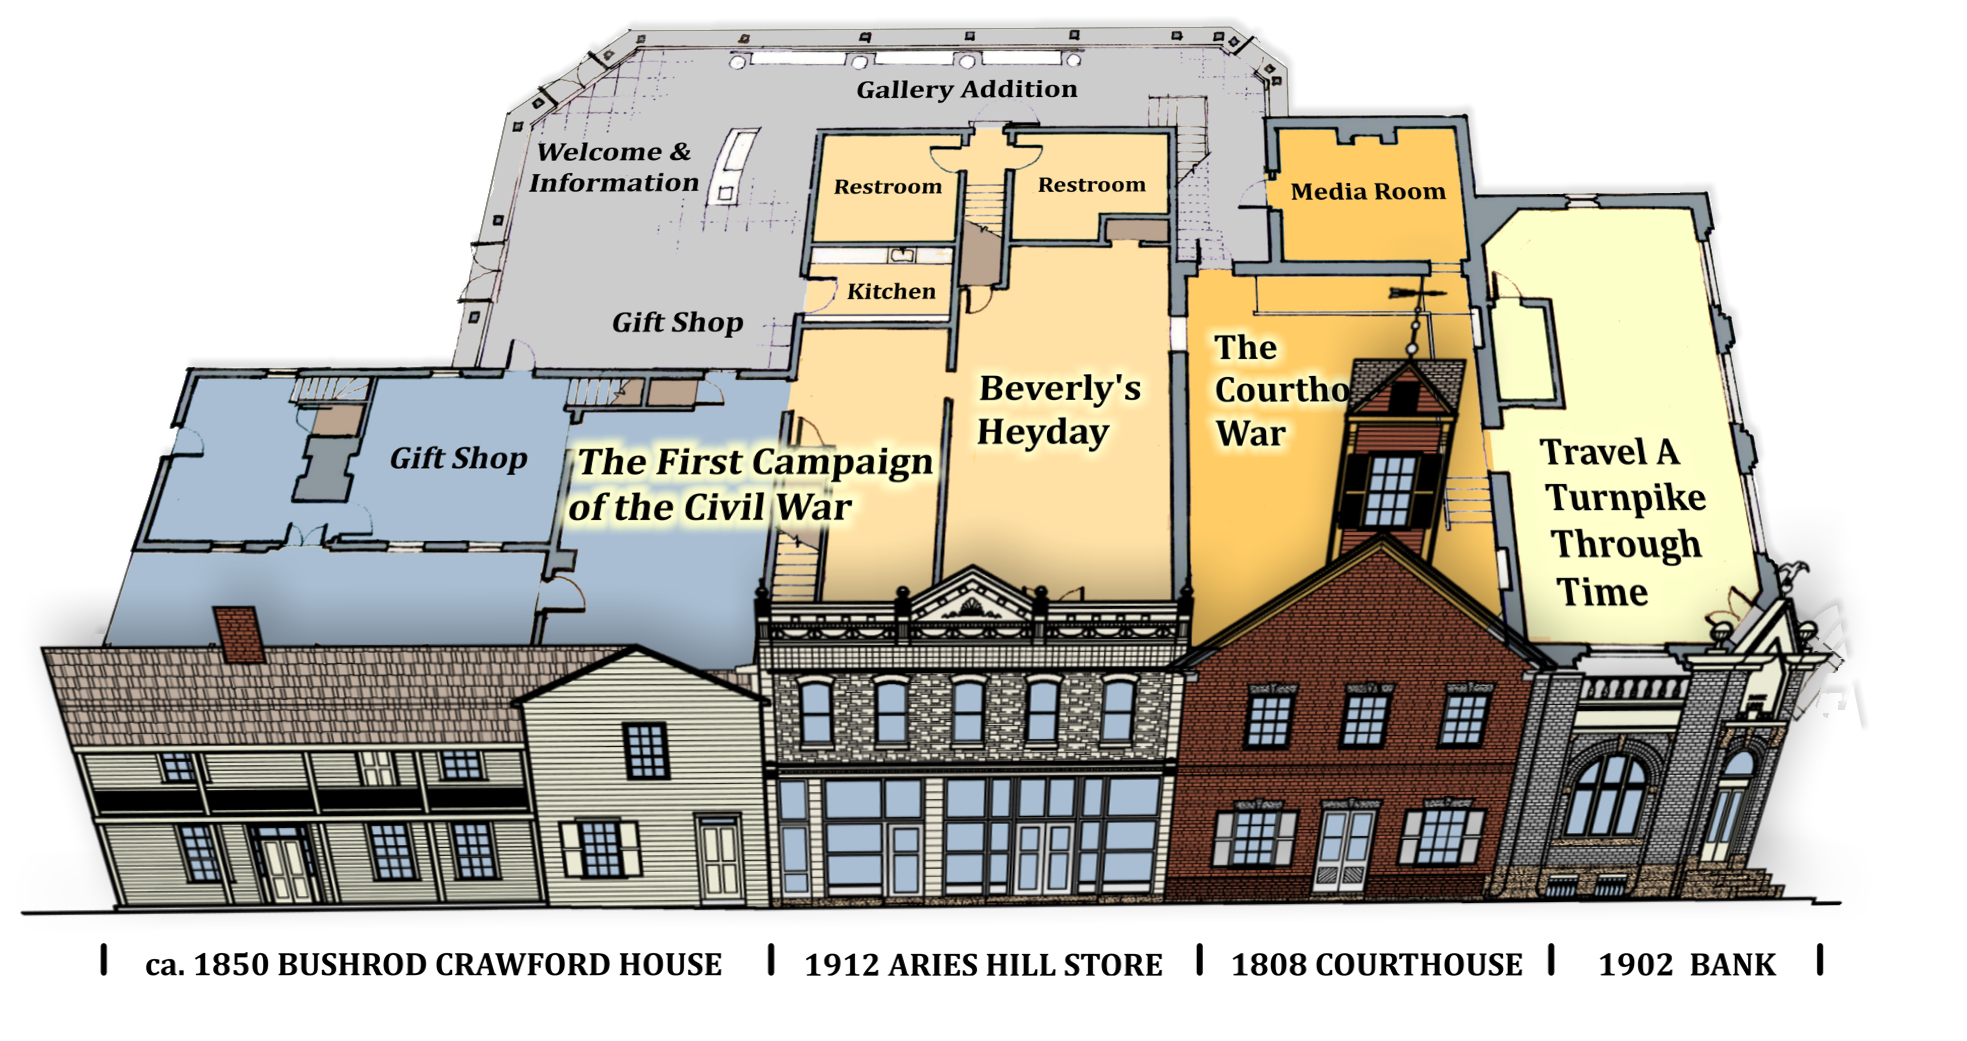 Map of Beverly Heritage Center's interior. Courtesy of the Beverly Heritage Center.